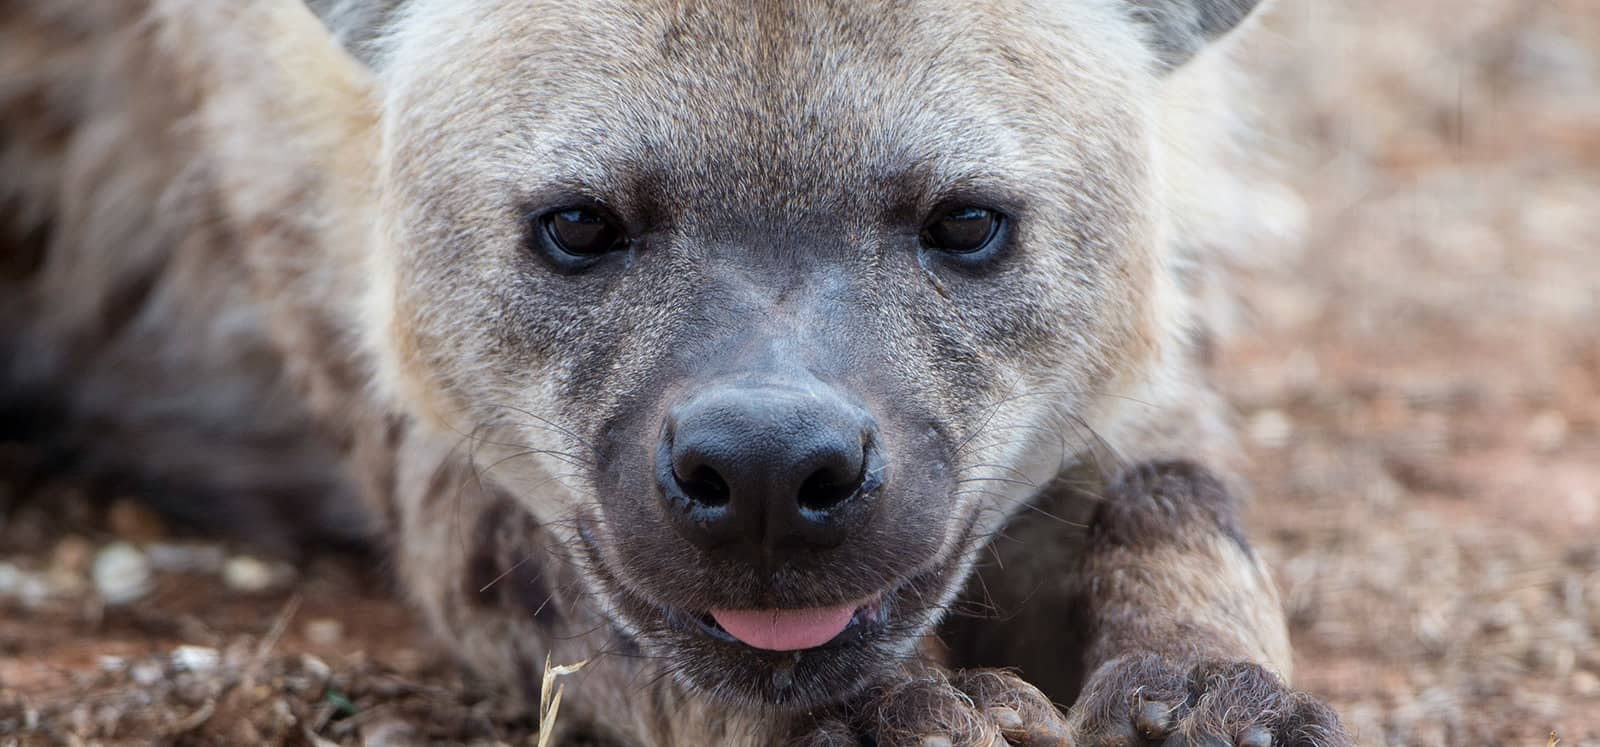 Close-up of Spotted Hyena poking out tongue